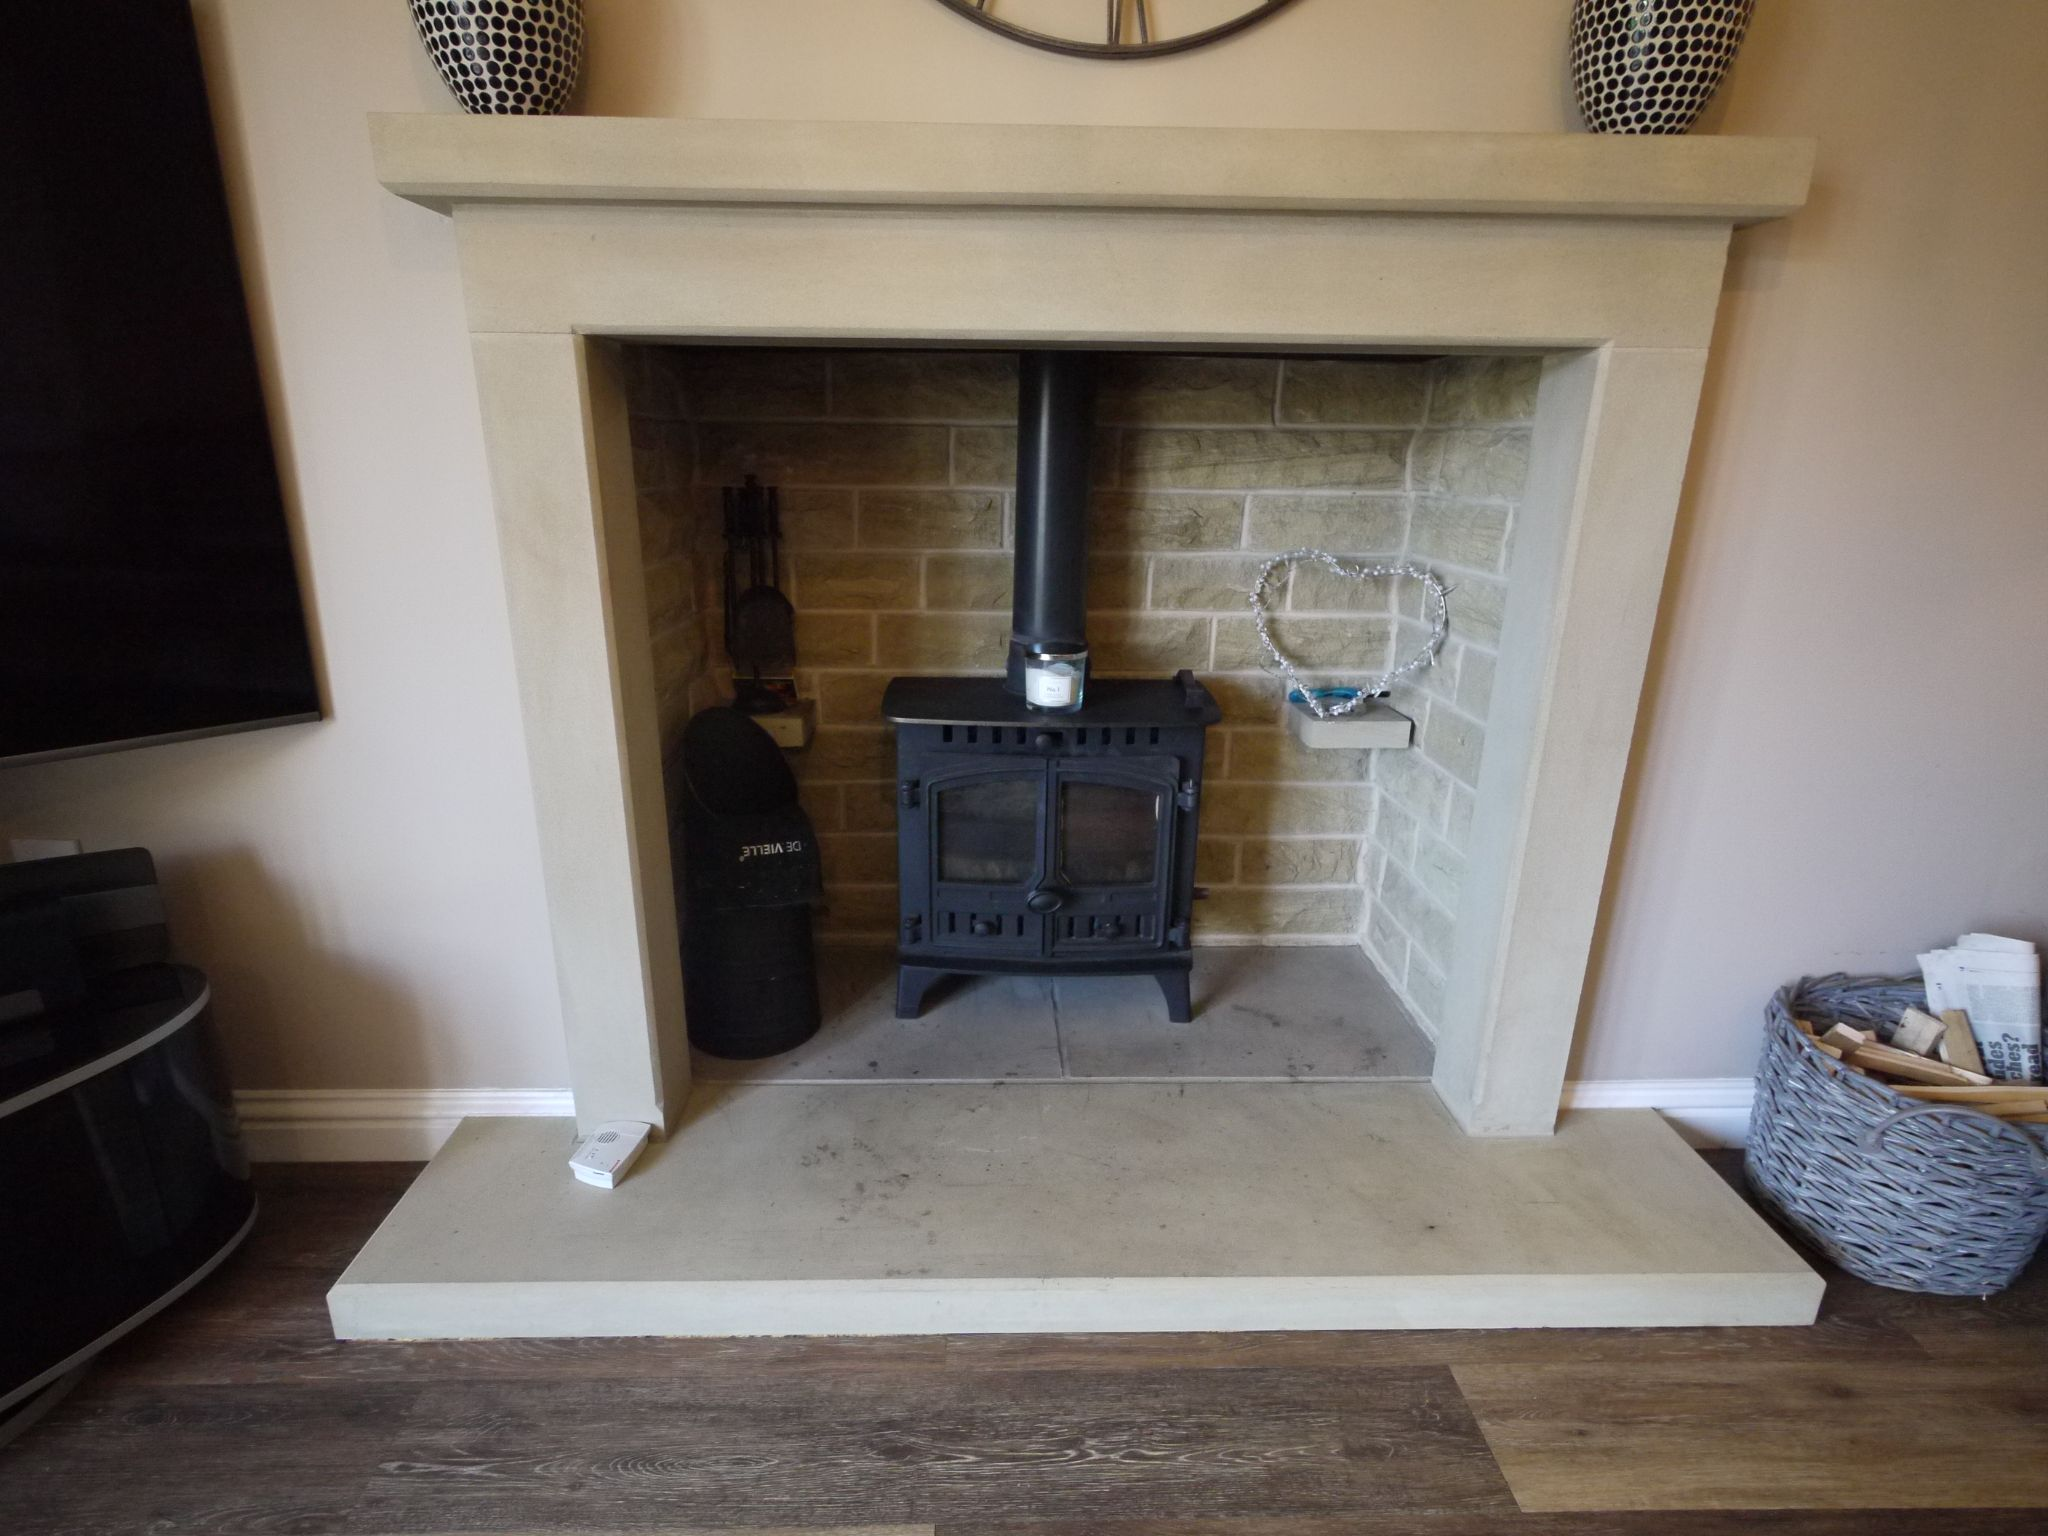 4 bedroom detached house SSTC in Halifax - Lounge fireplace.